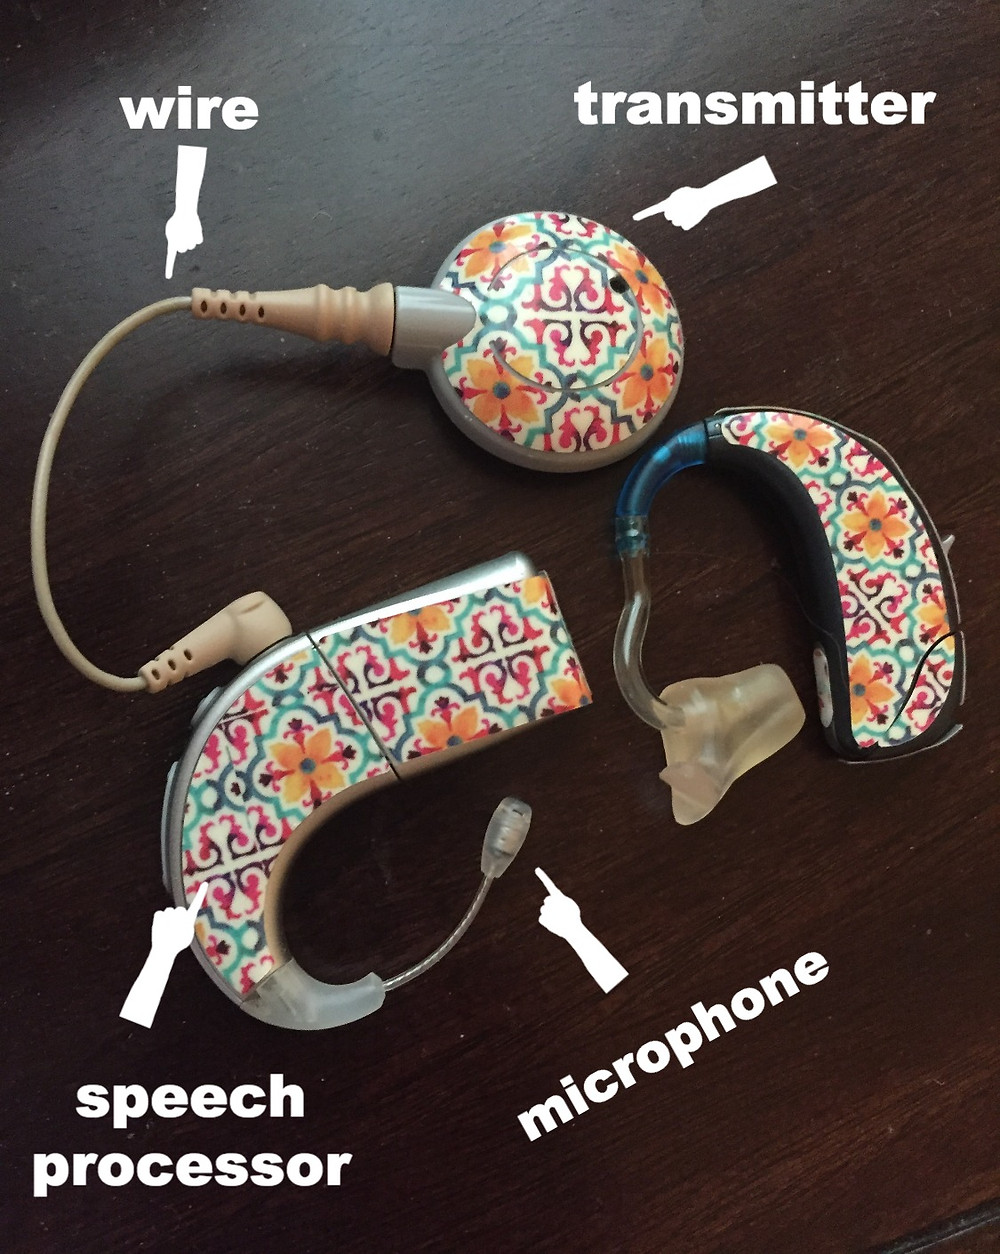 A cochlear implant and a hearing aid rest side by side. Each has a decorative geometric pattern. The pattern is in pink, blue and orange. The cochlear implant on the left is labeled. The circular shape at the top is the transmitter. The wire is beige and about 1.5 inches long. The speech processor is crescent shaped and about one inch long. The microphone extends just past the speech processor. When worn, the microphone sits just over the ear canal.